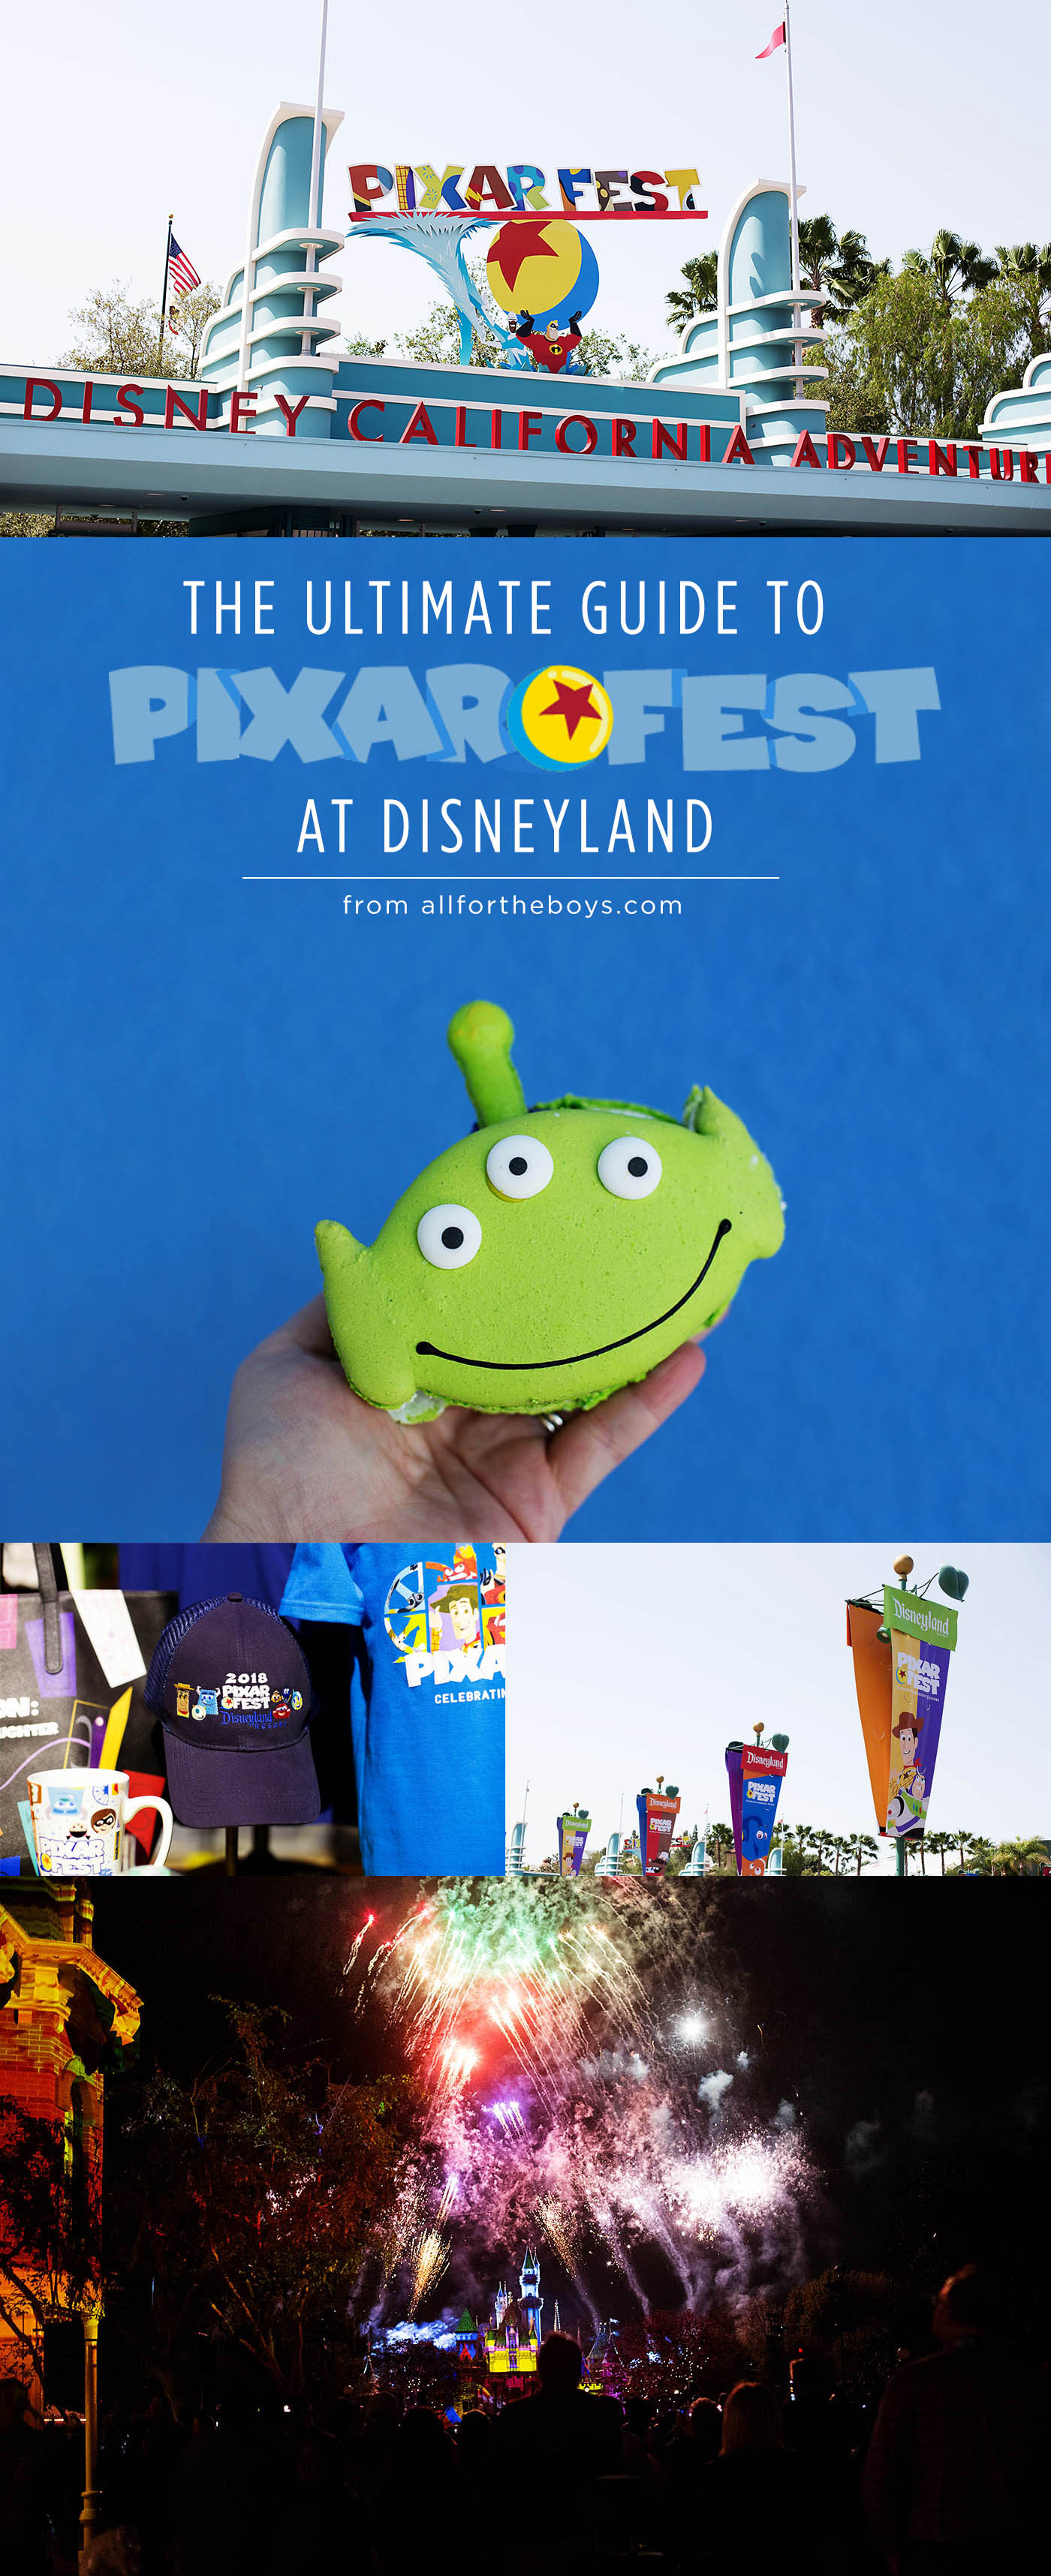 The Ultimate Guide to Pixar Fest with info on food, merchandise, entertainment and even a discount code!